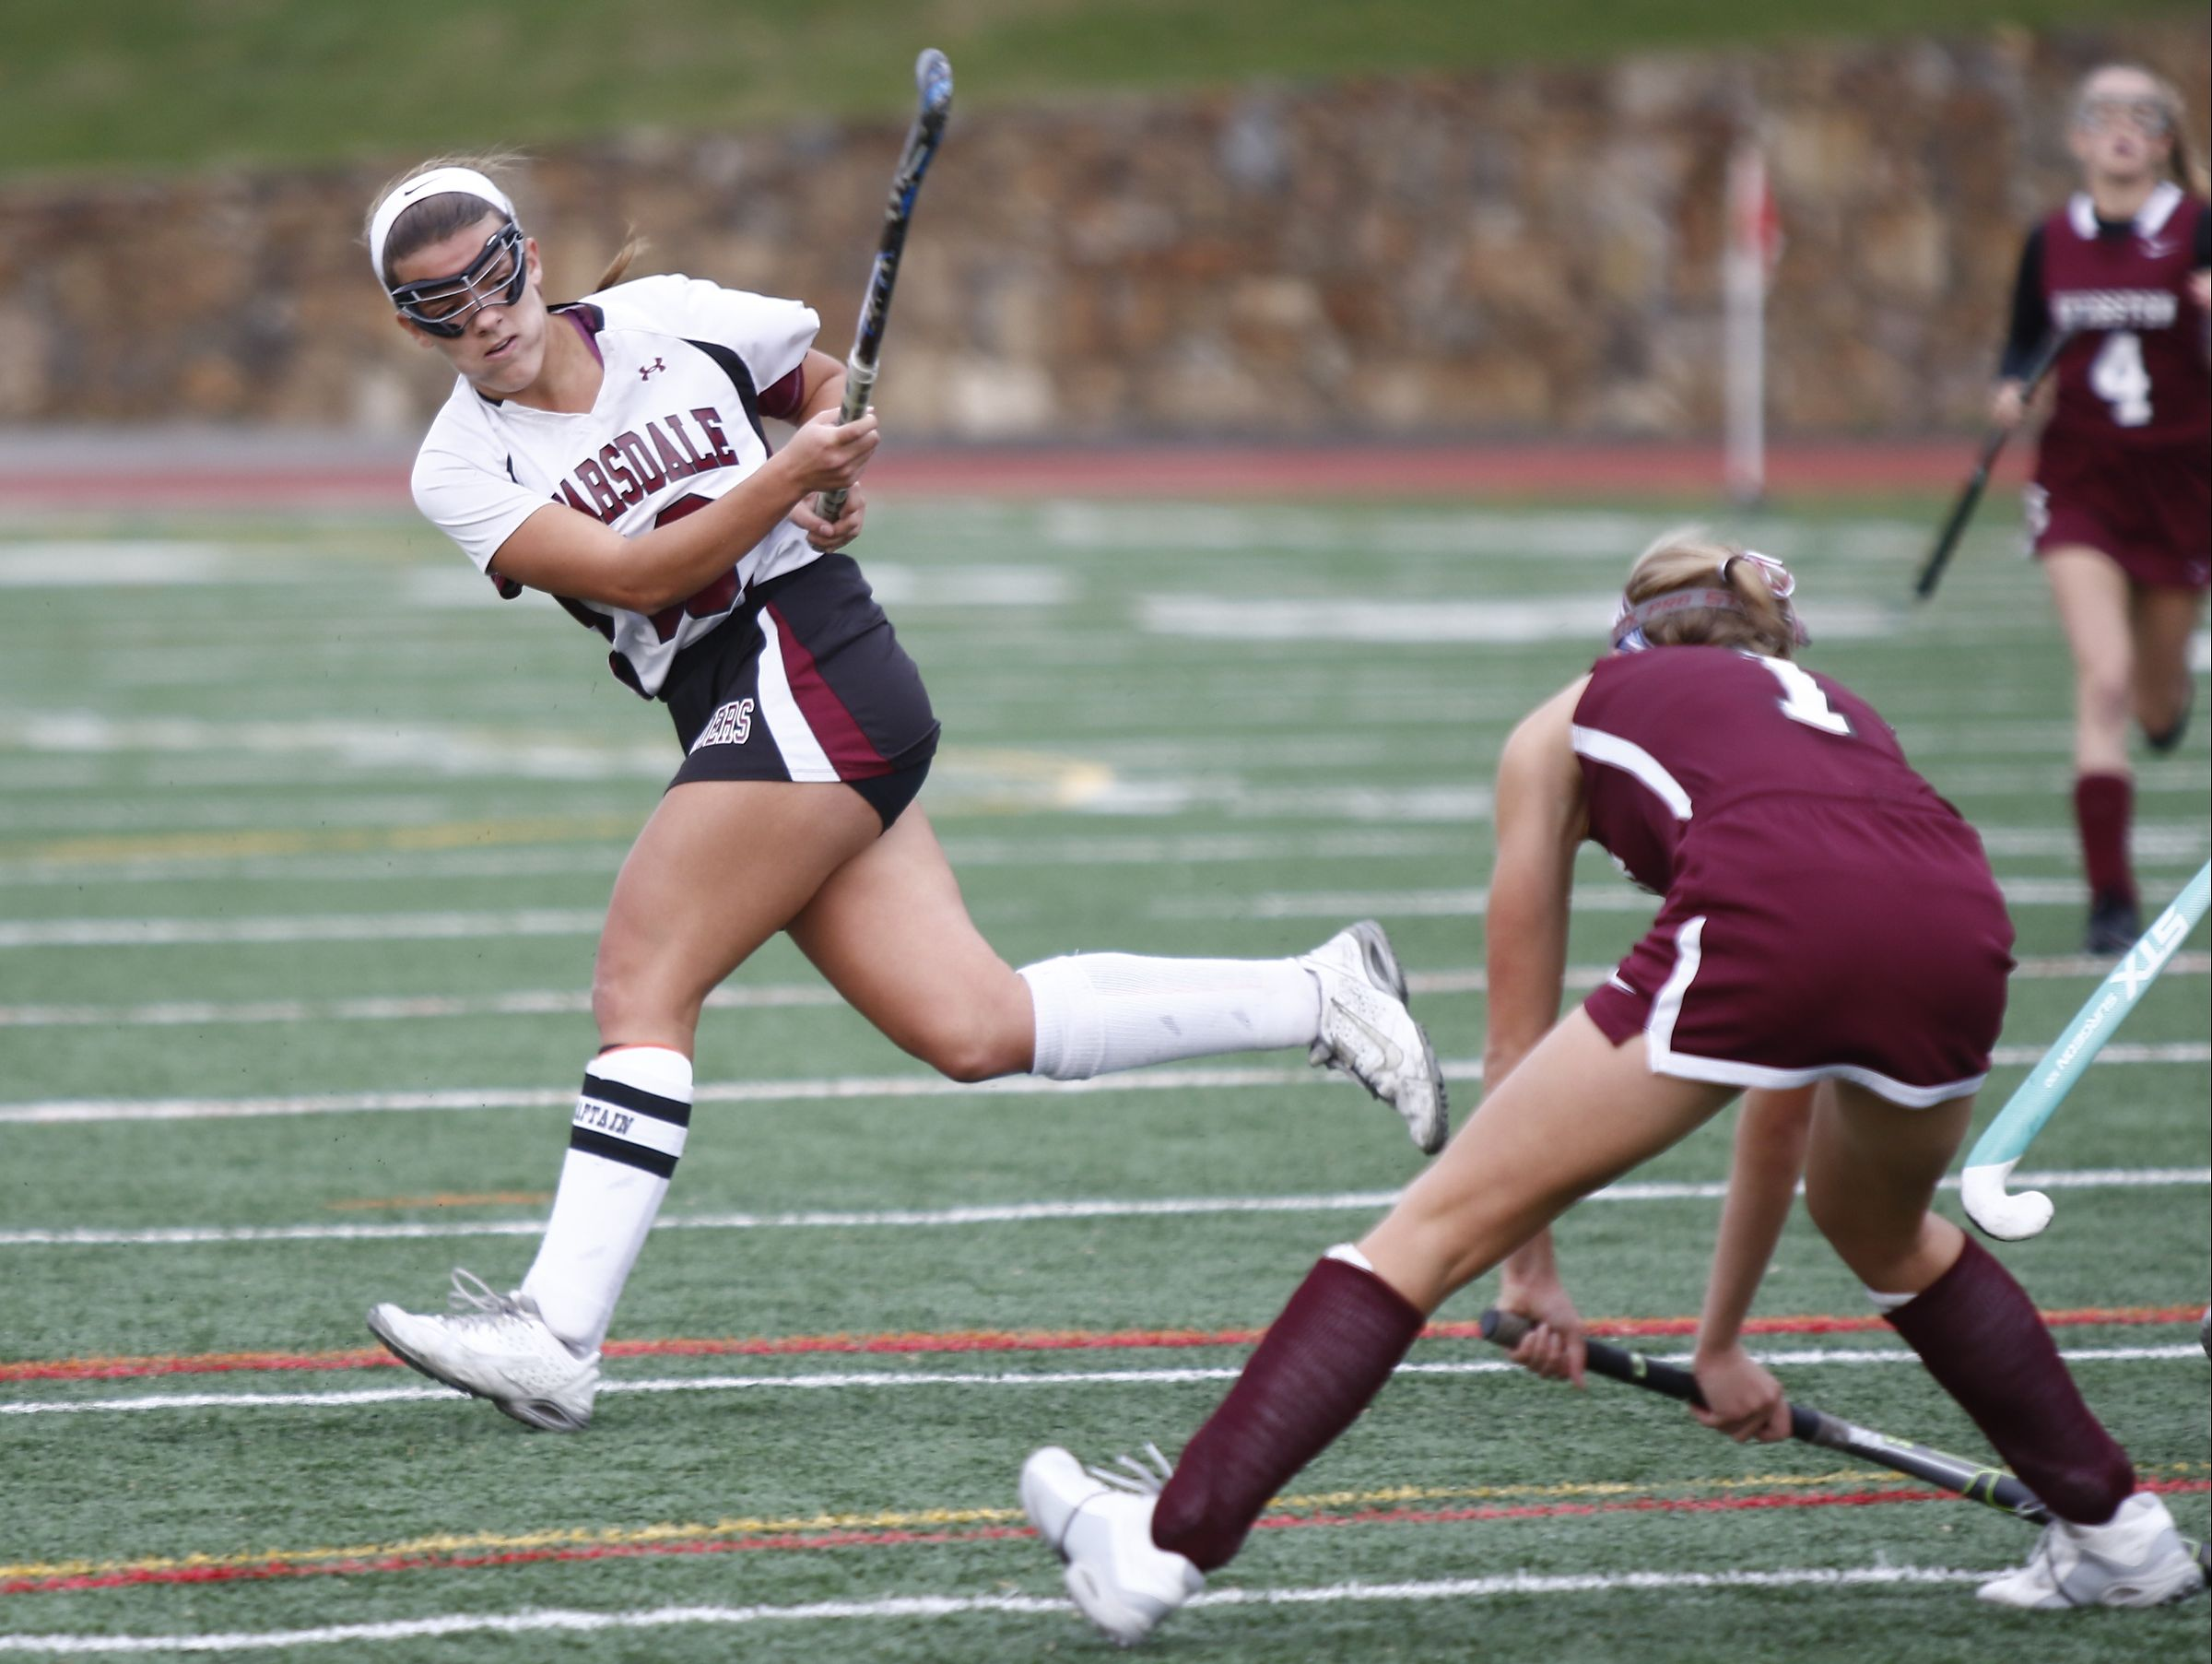 Scarsdale's Erin Nicholas (16) takes a shot on goal during their 5-0 win in the Class A regional championship field hockey game at Valhalla High School on Saturday, November 5, 2016.